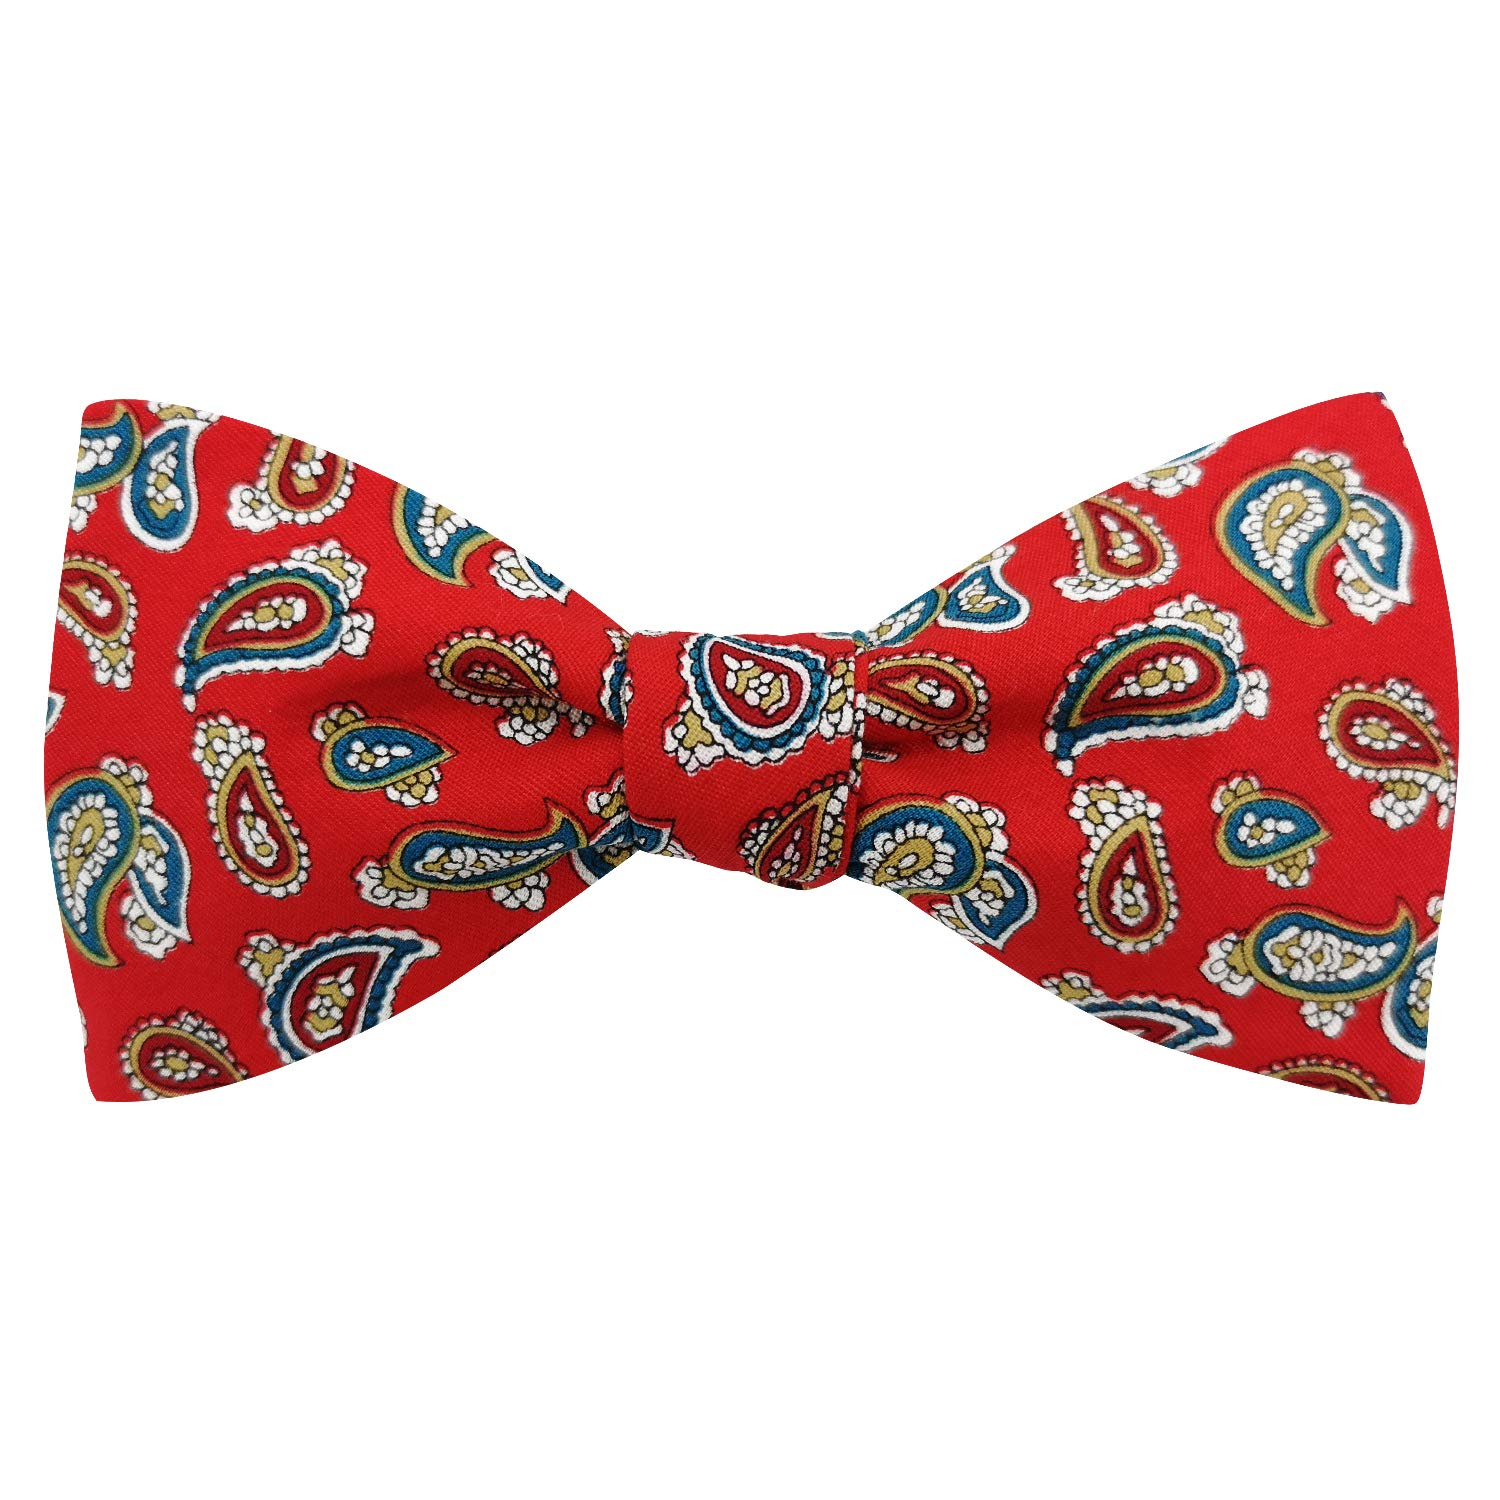 Angelcrab Mens Bowtie Paisley /& Floral Adjustable Cotton Print Bow Ties